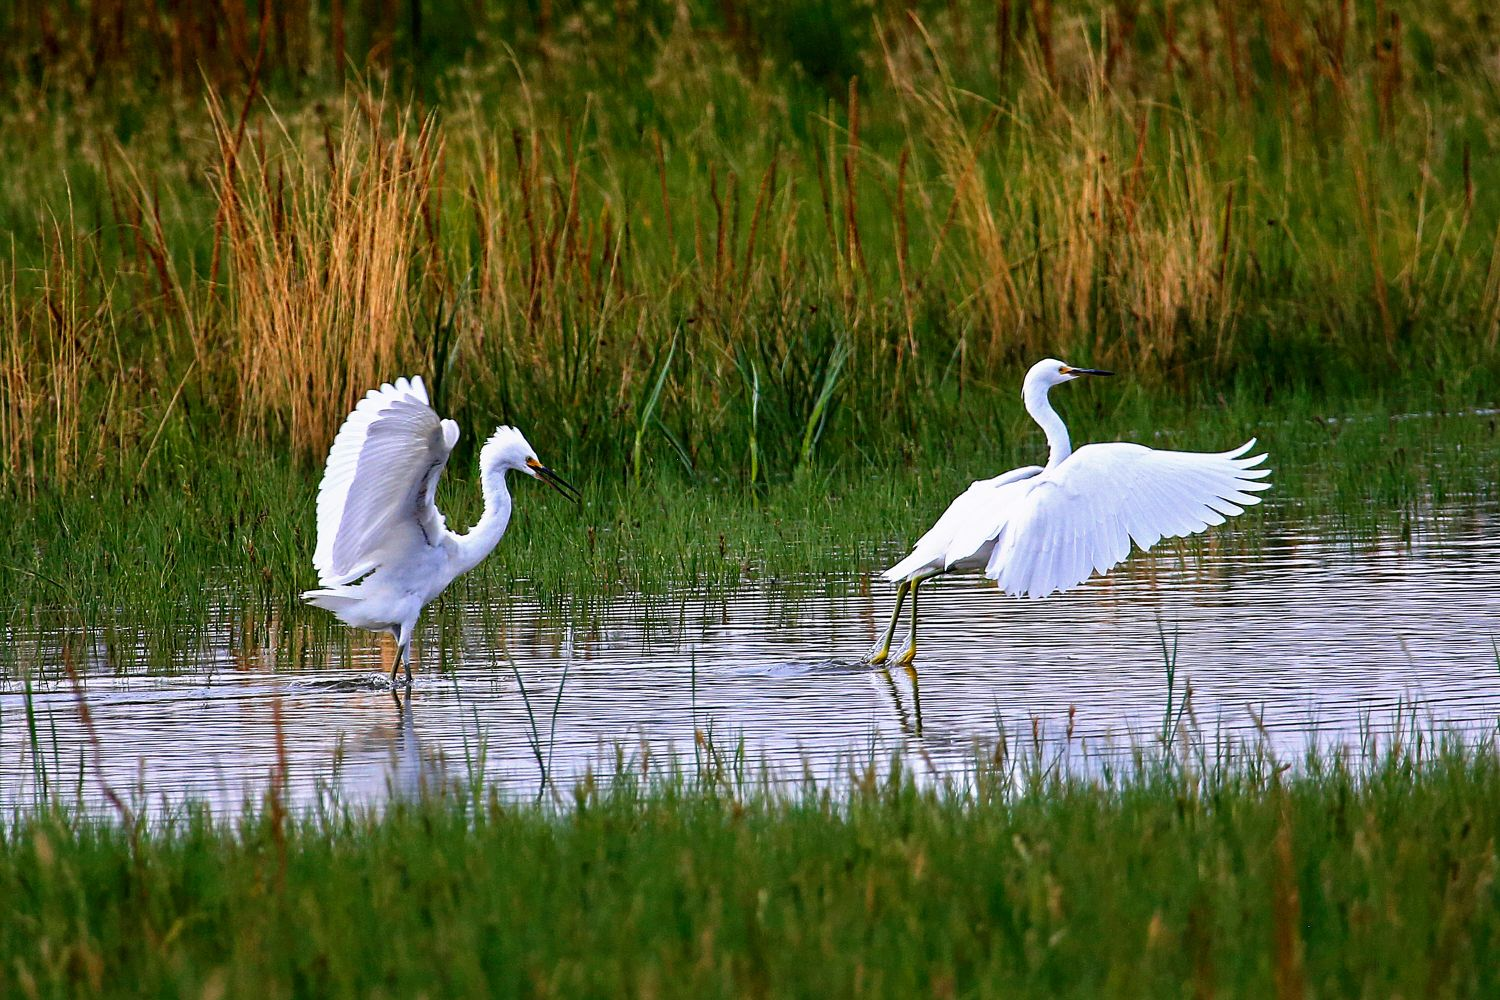 A beautiful pair of Egrets displaying near Salt Lake City in the USA.